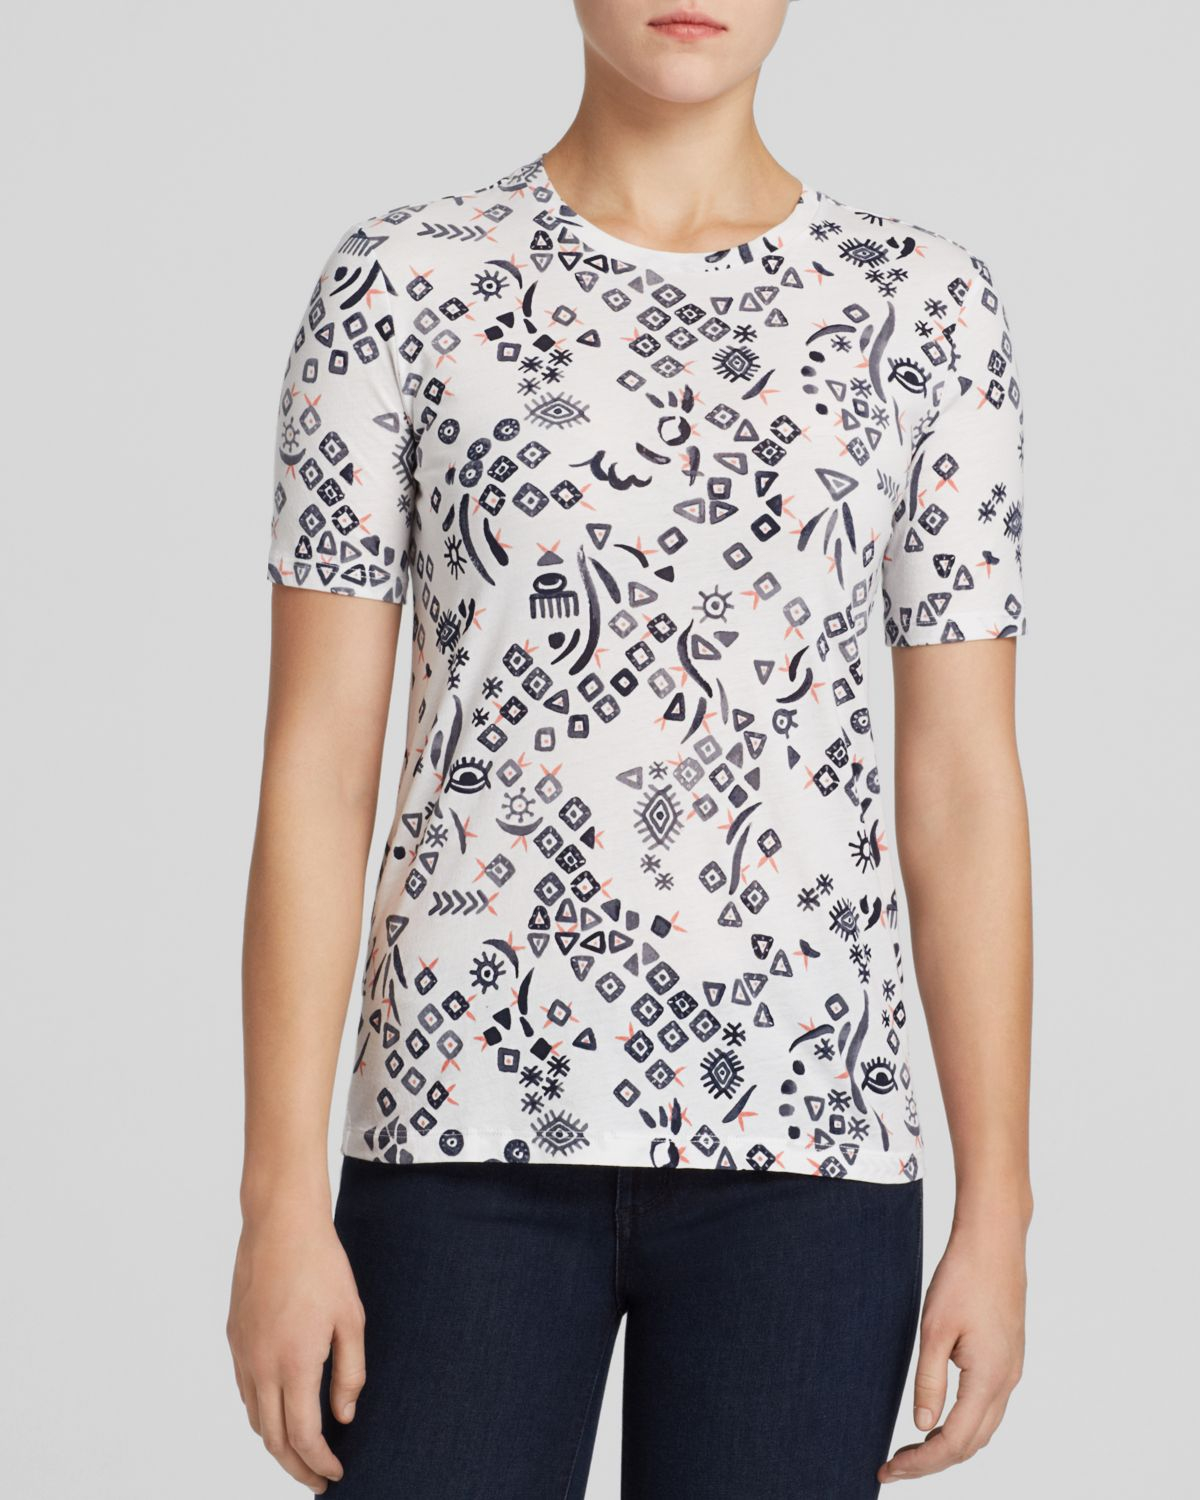 Lyst tory burch printed t shirt in white for Tory burch t shirt